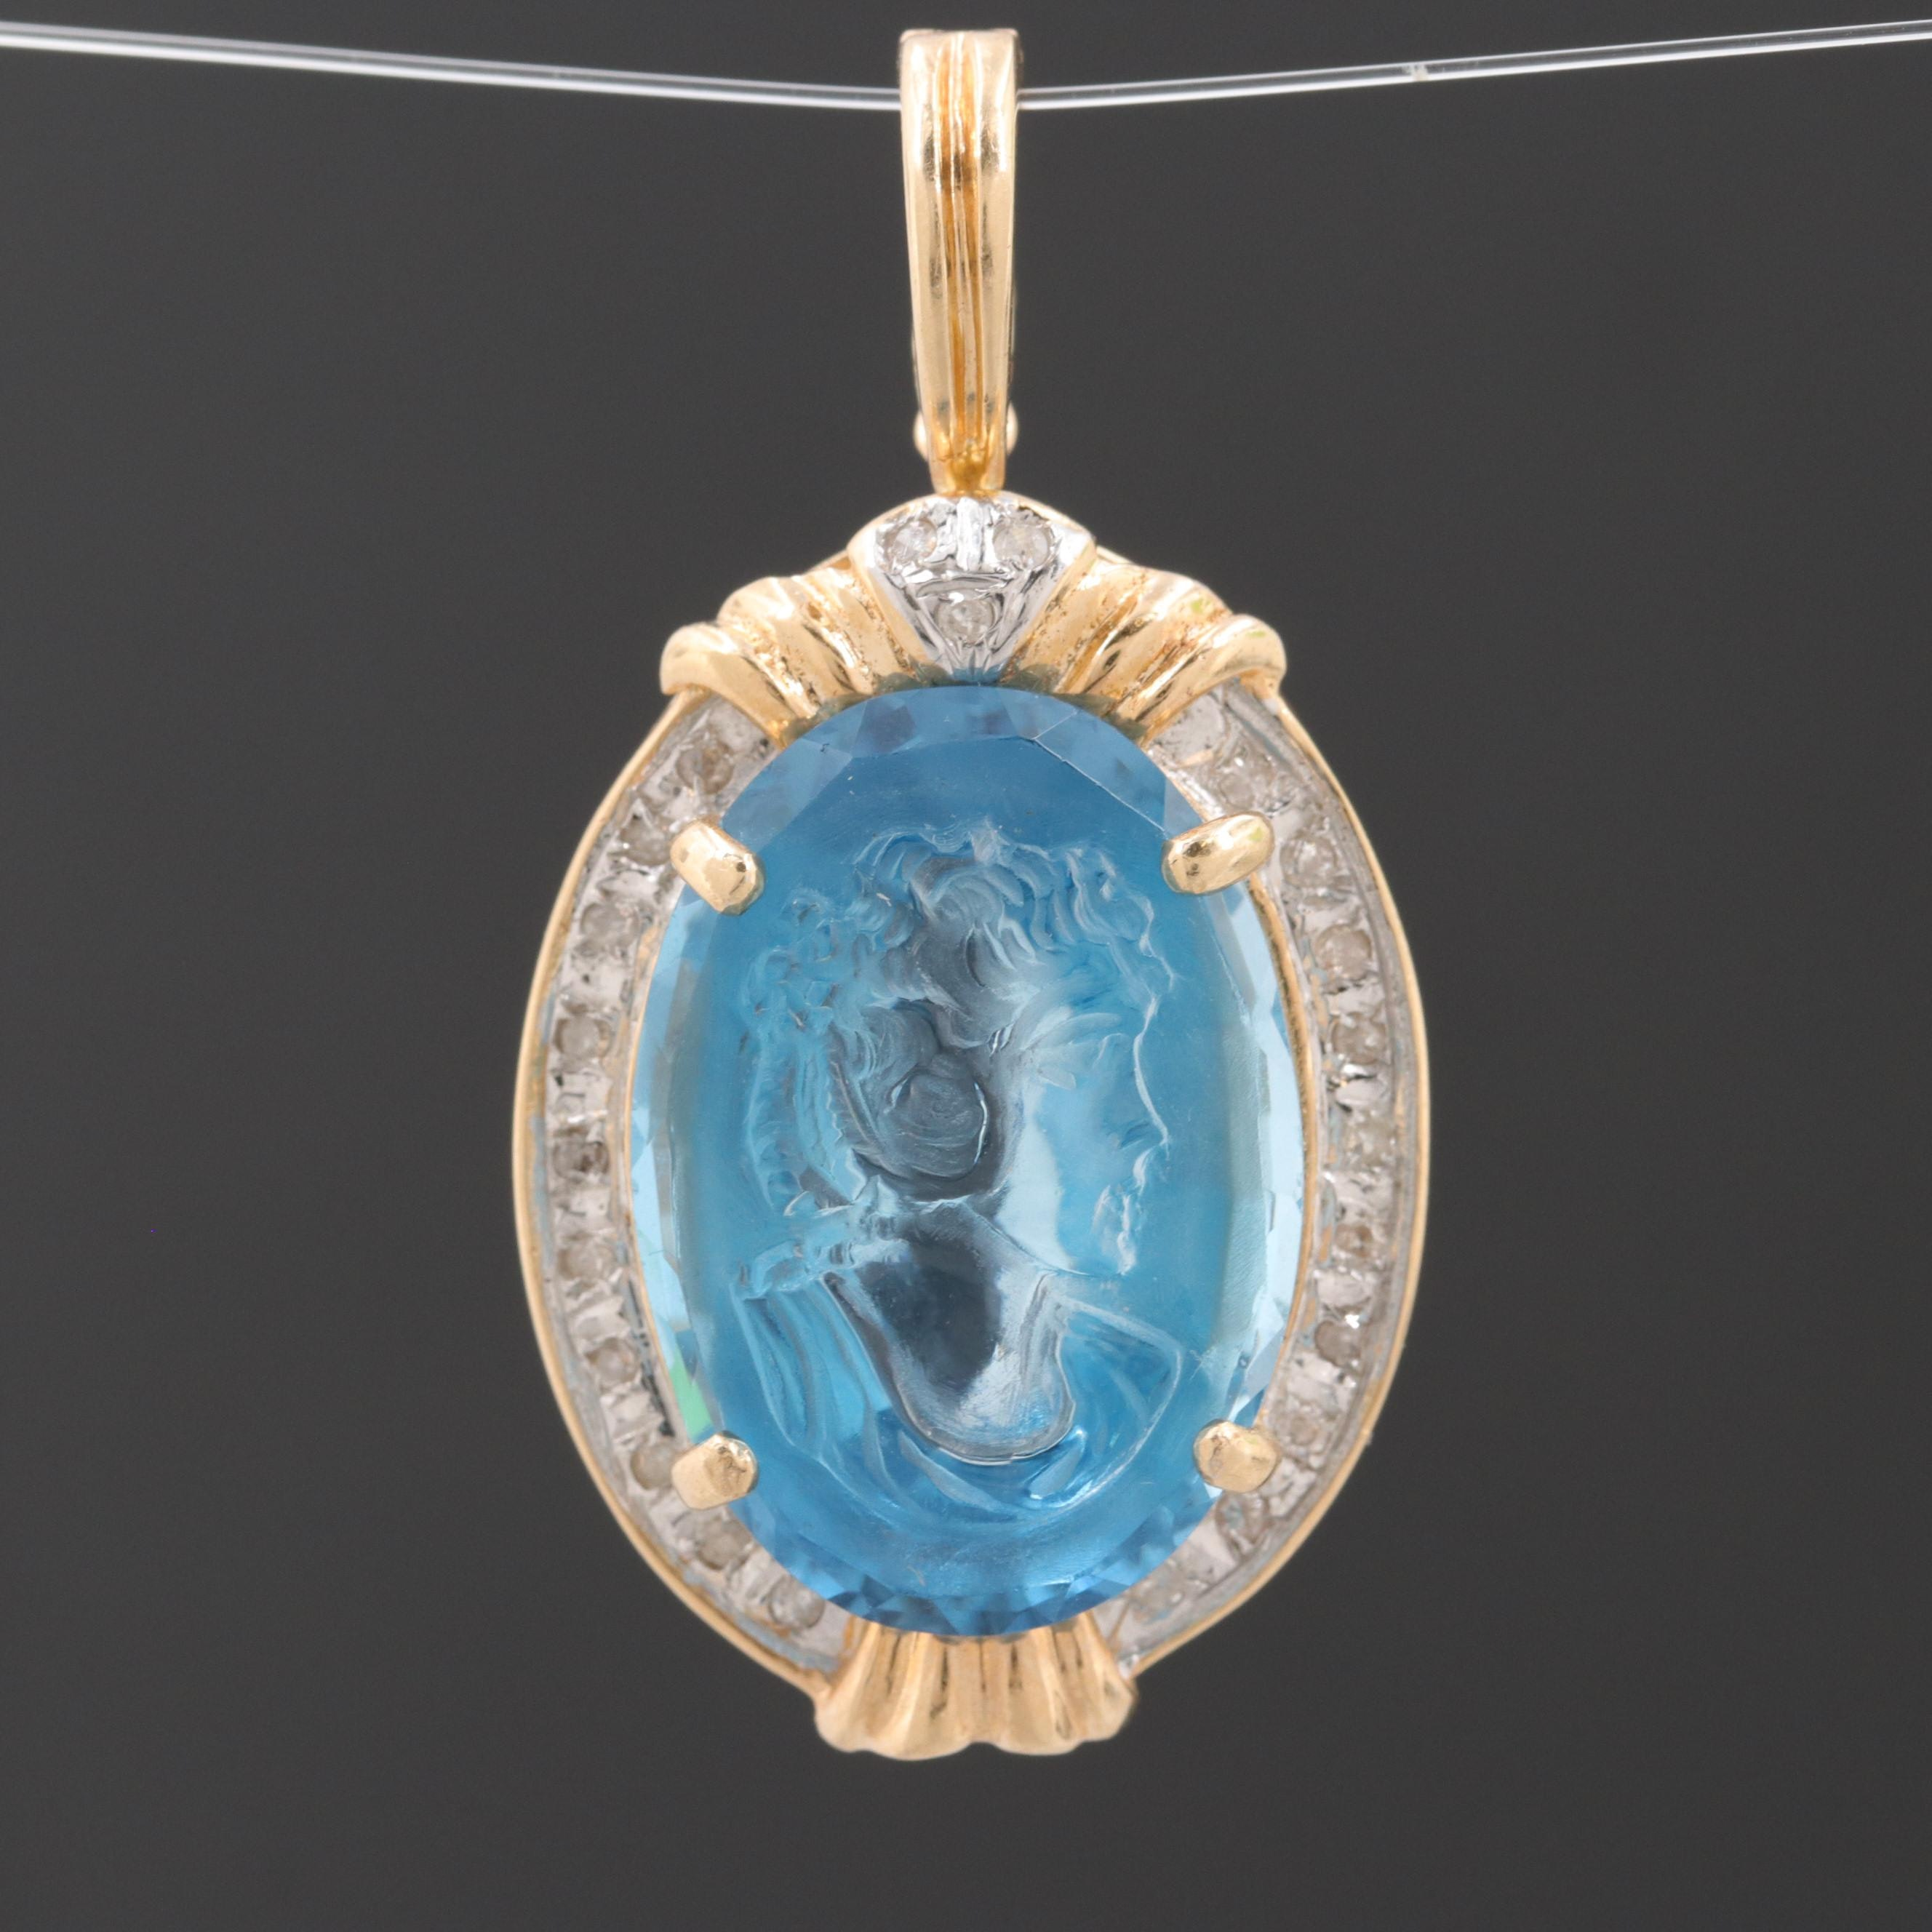 14K Yellow Gold 1.61 CTW Diamond and Blue Topaz Carved Cameo Enhancer Pendant